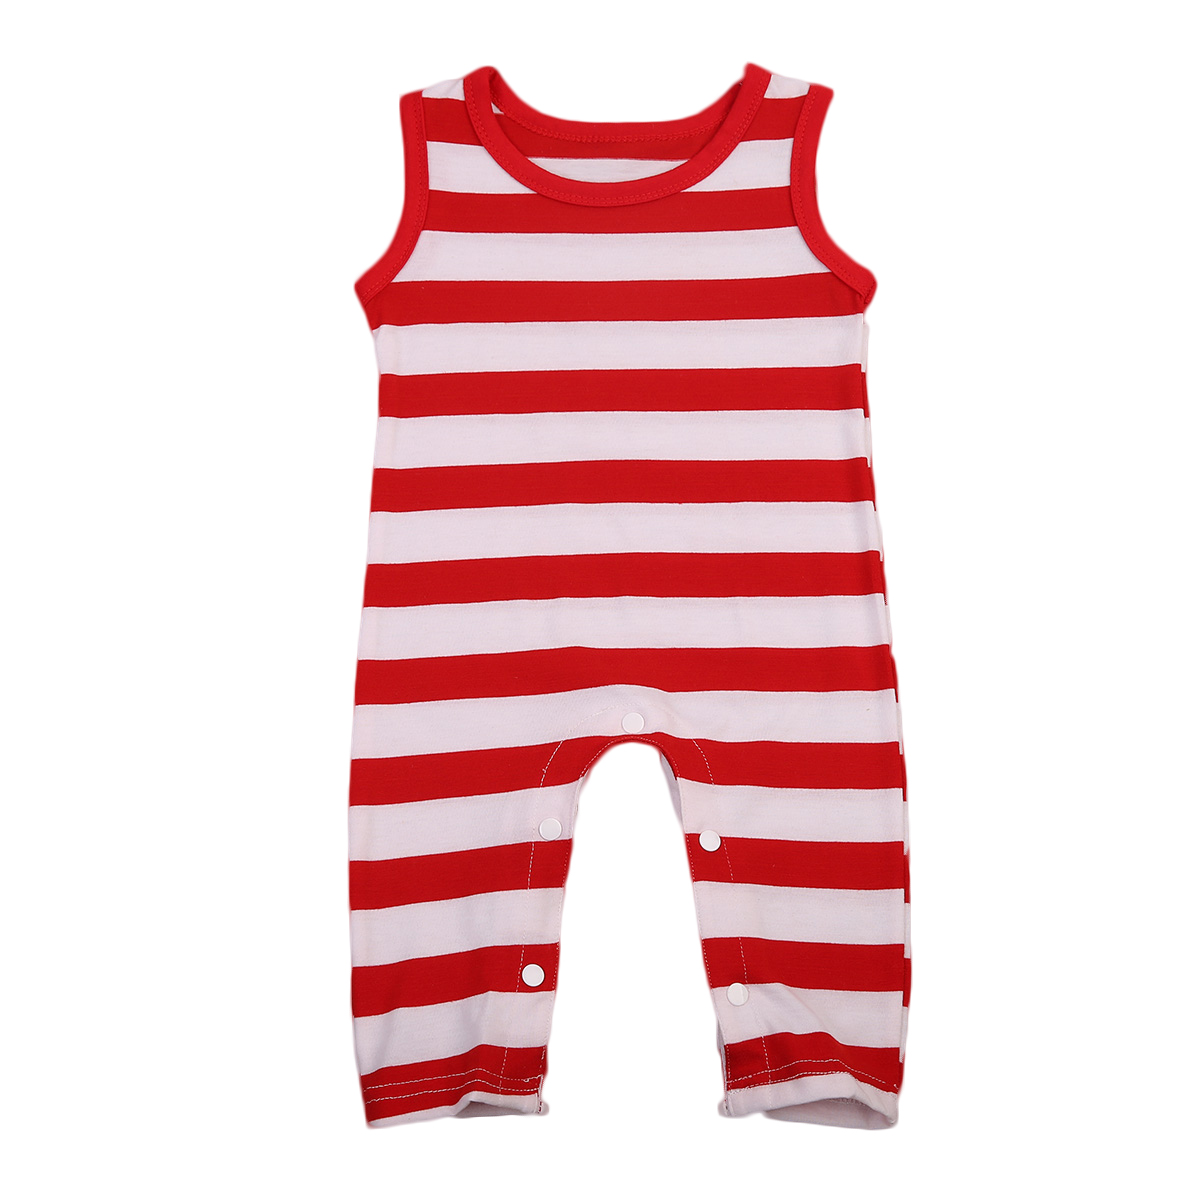 Adorable Rompers Summer Baby Unisex Striped Jumper Jumpsuit Newborn Baby O-Neck Romper Infant Boy Girl Jumpsuit Clothes Outfits